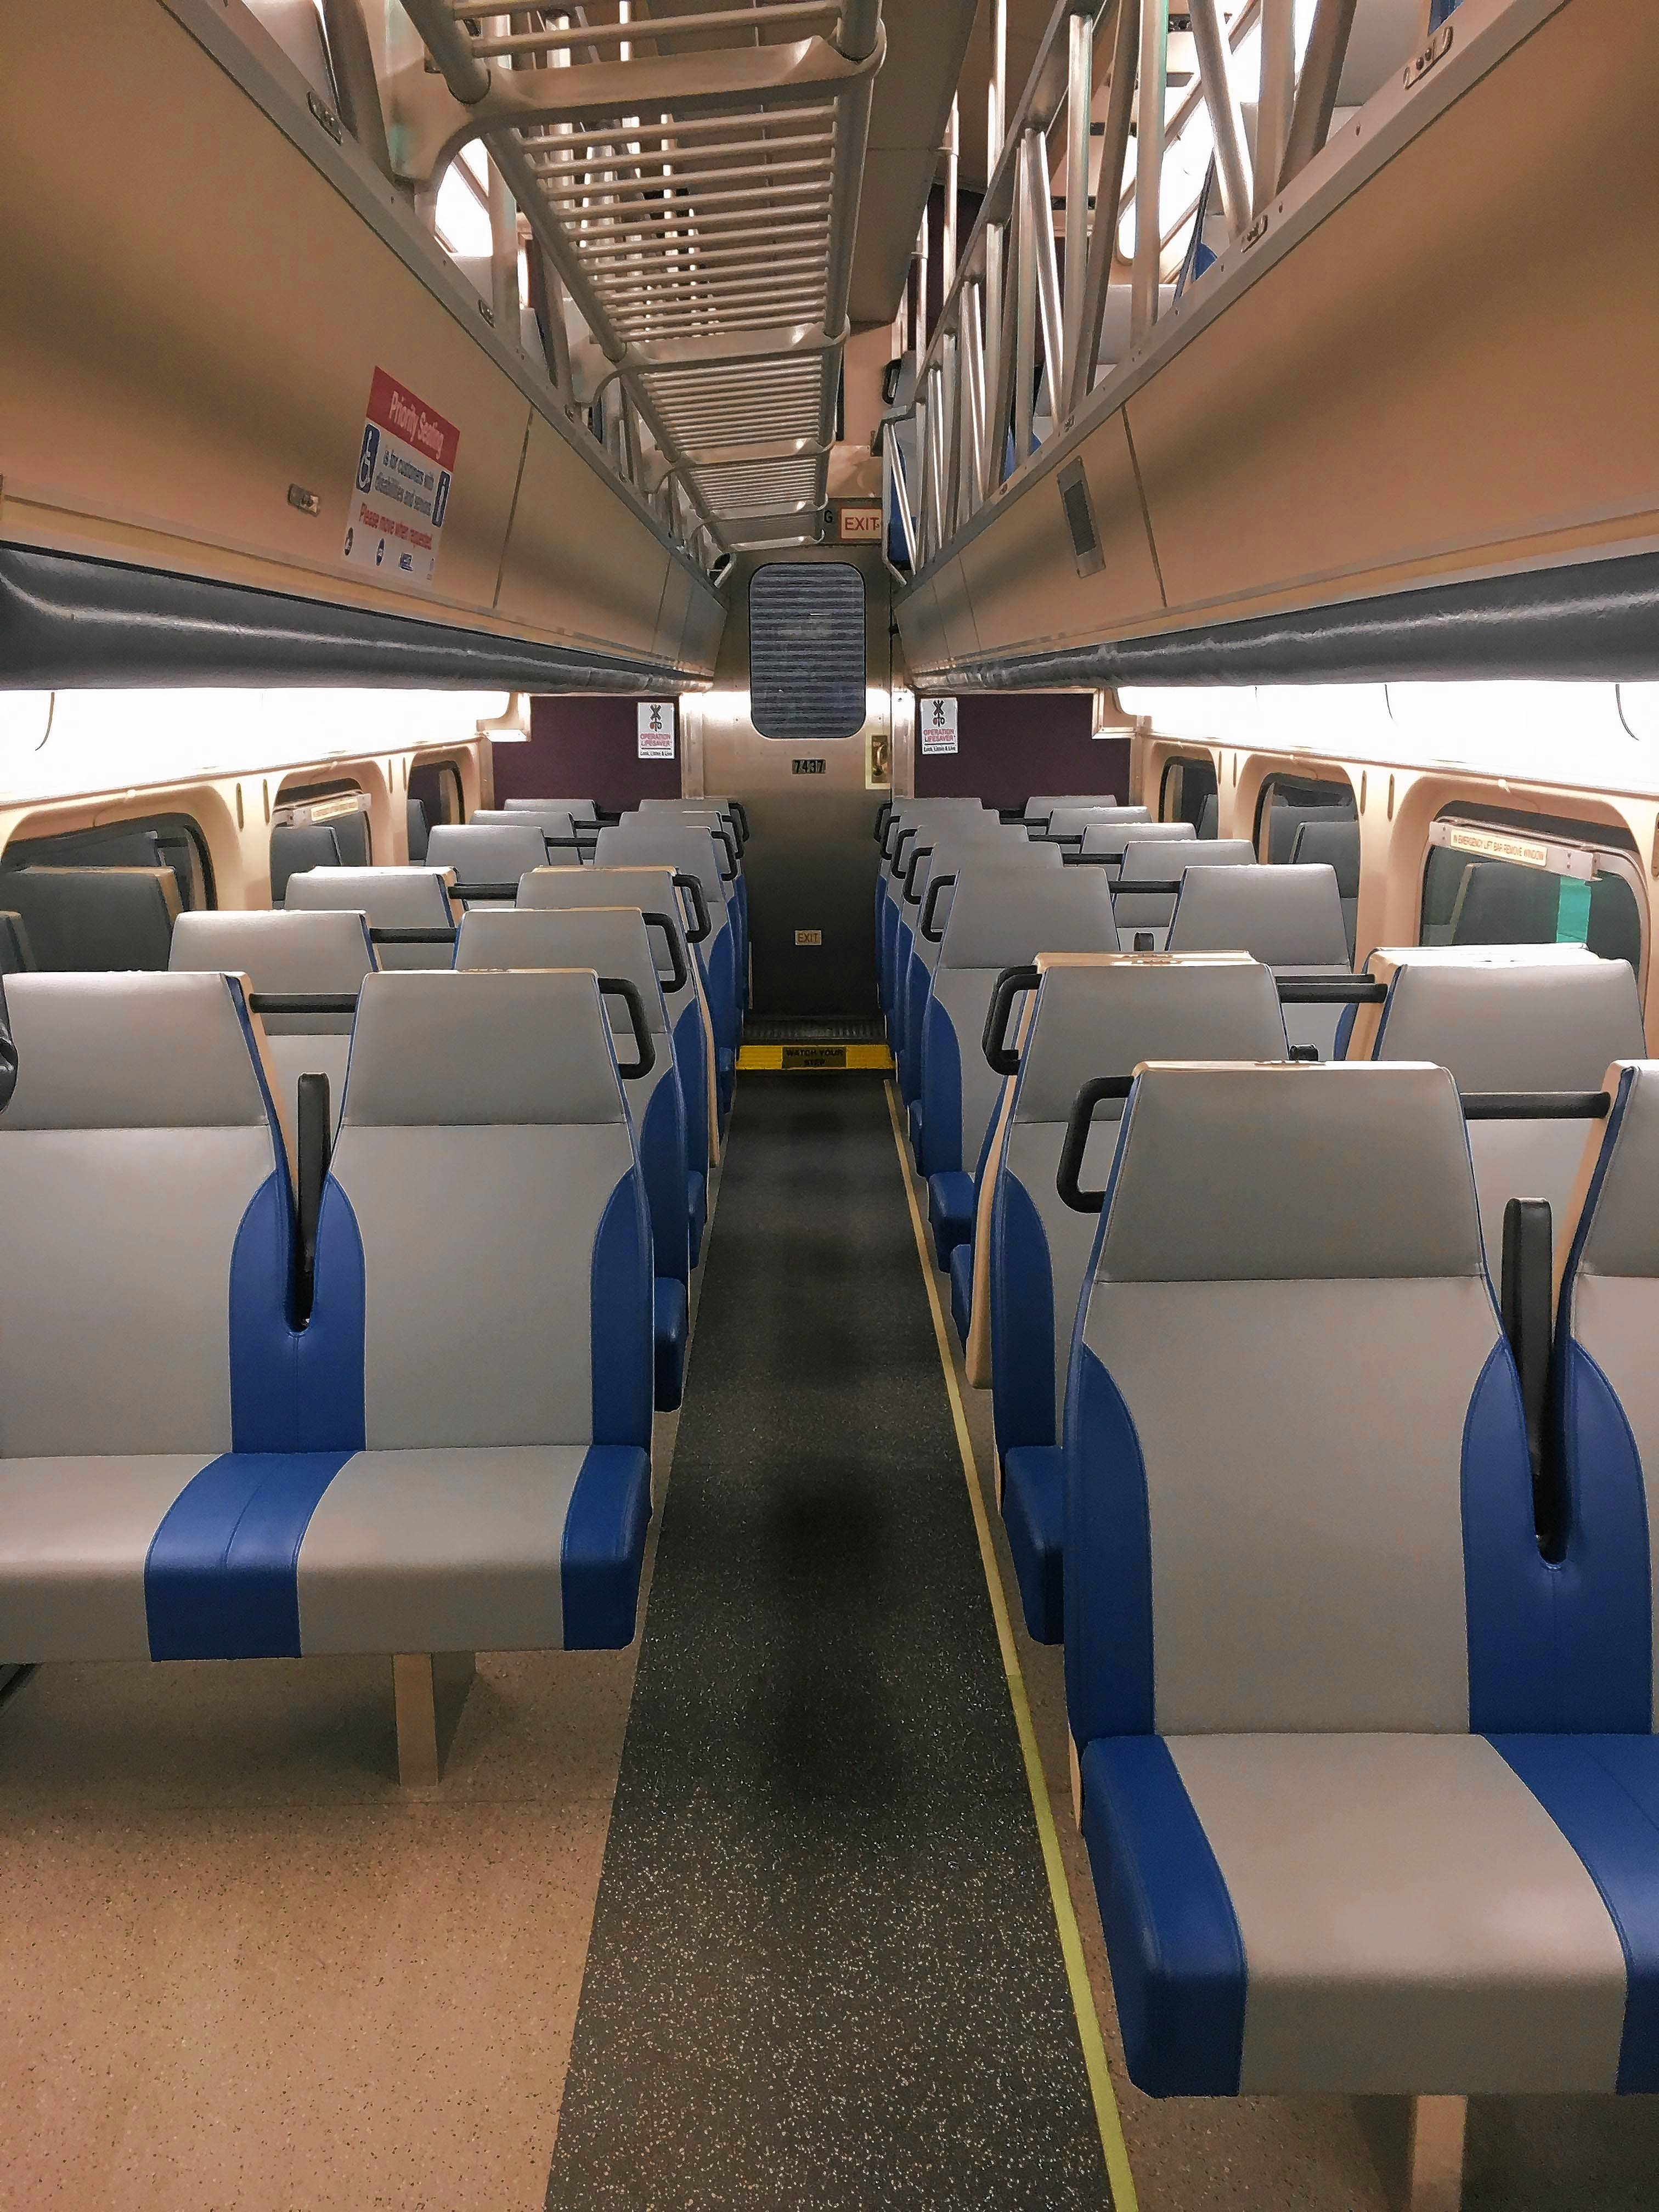 Will you be sitting pretty on this new Metra seat, complete with a cupholder? Metra is upgrading seating in dozens of its cars this year, officials say.